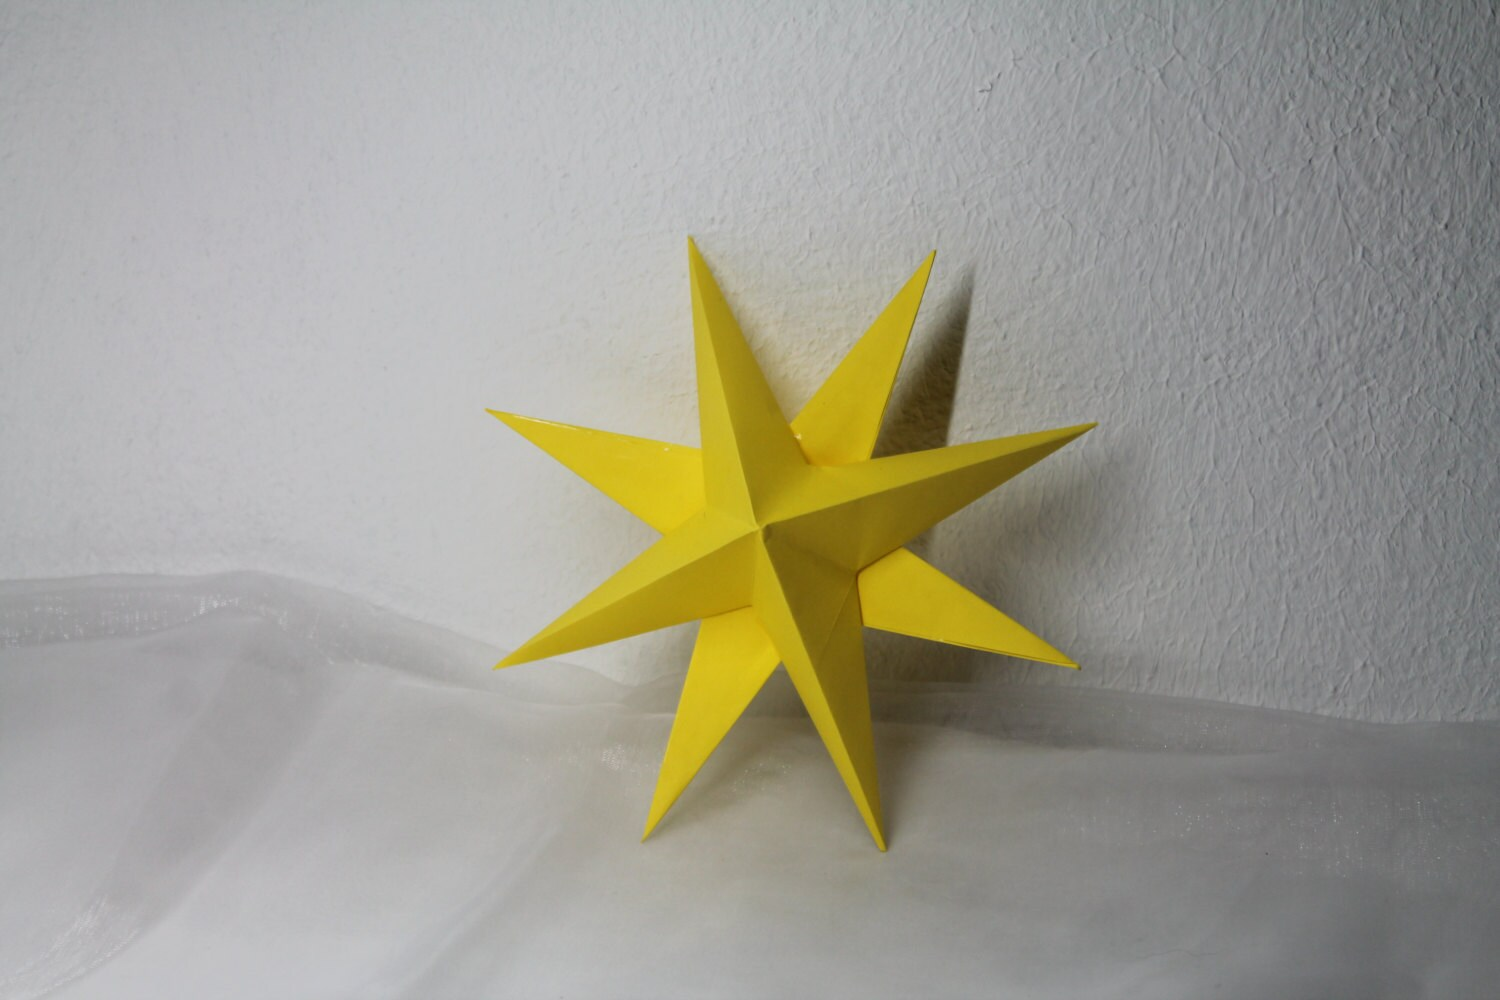 Awesome Star Wall Decoration Pictures Inspiration - The Wall Art ...